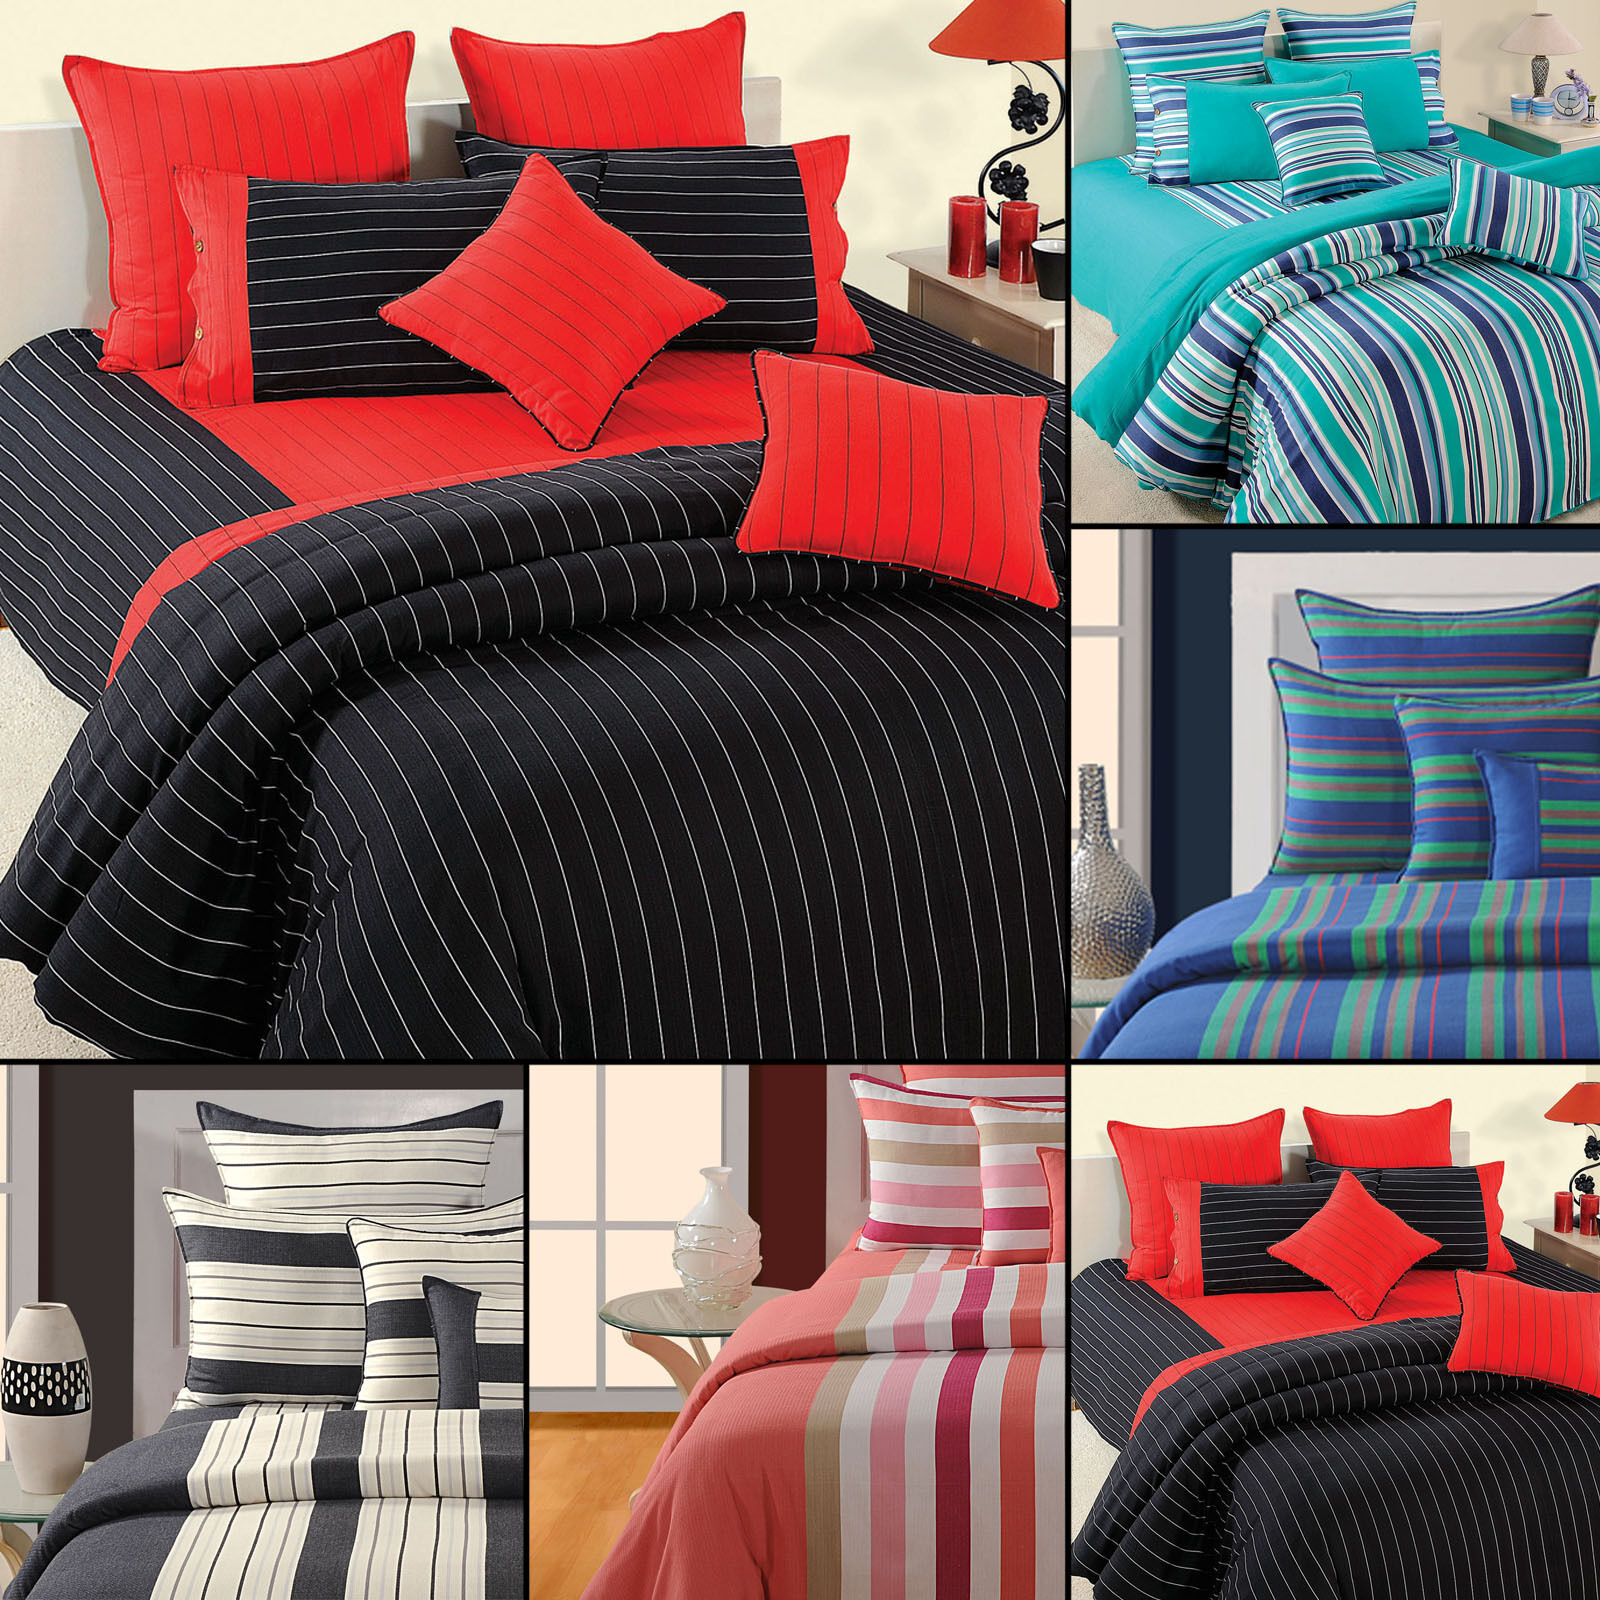 100% Cotton Twin Queen Dimensione Home Decorative Bedding Comforter -1601